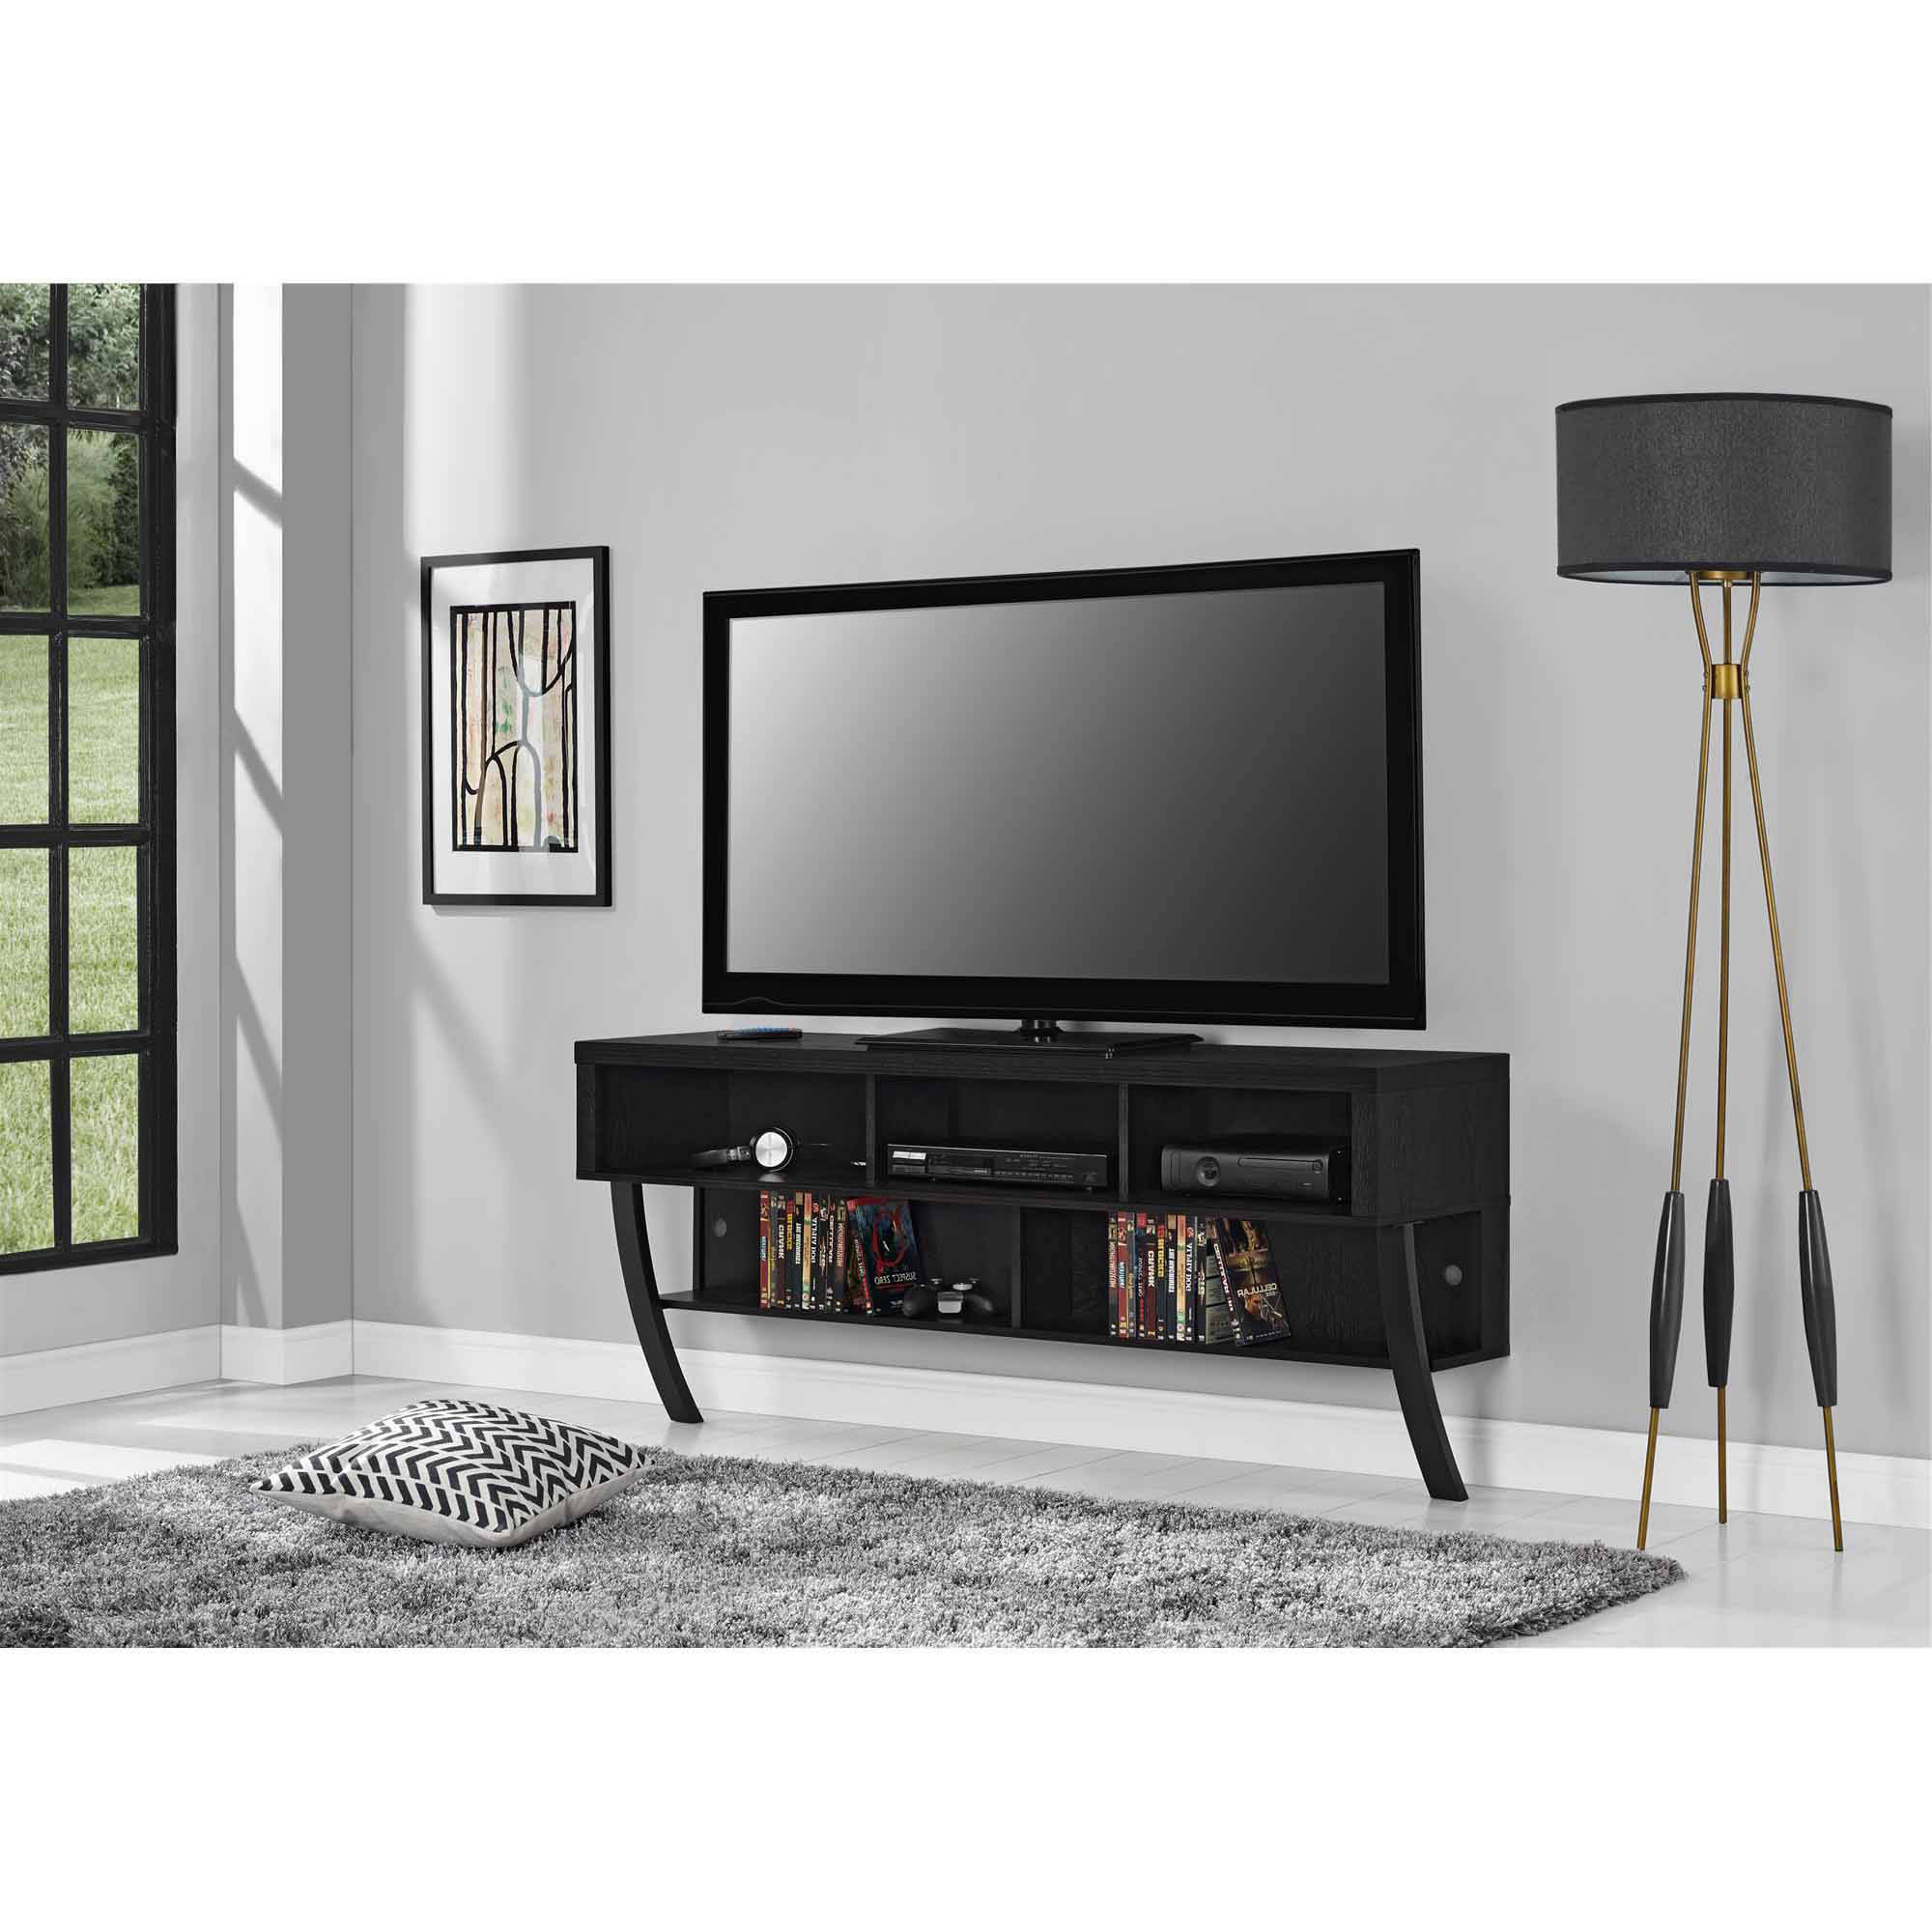 """Well Liked Altra Asher Wall Mounted 65"""" Tv Stand, Black Oak – Walmart Intended For Tv Stands With Mount (View 16 of 20)"""